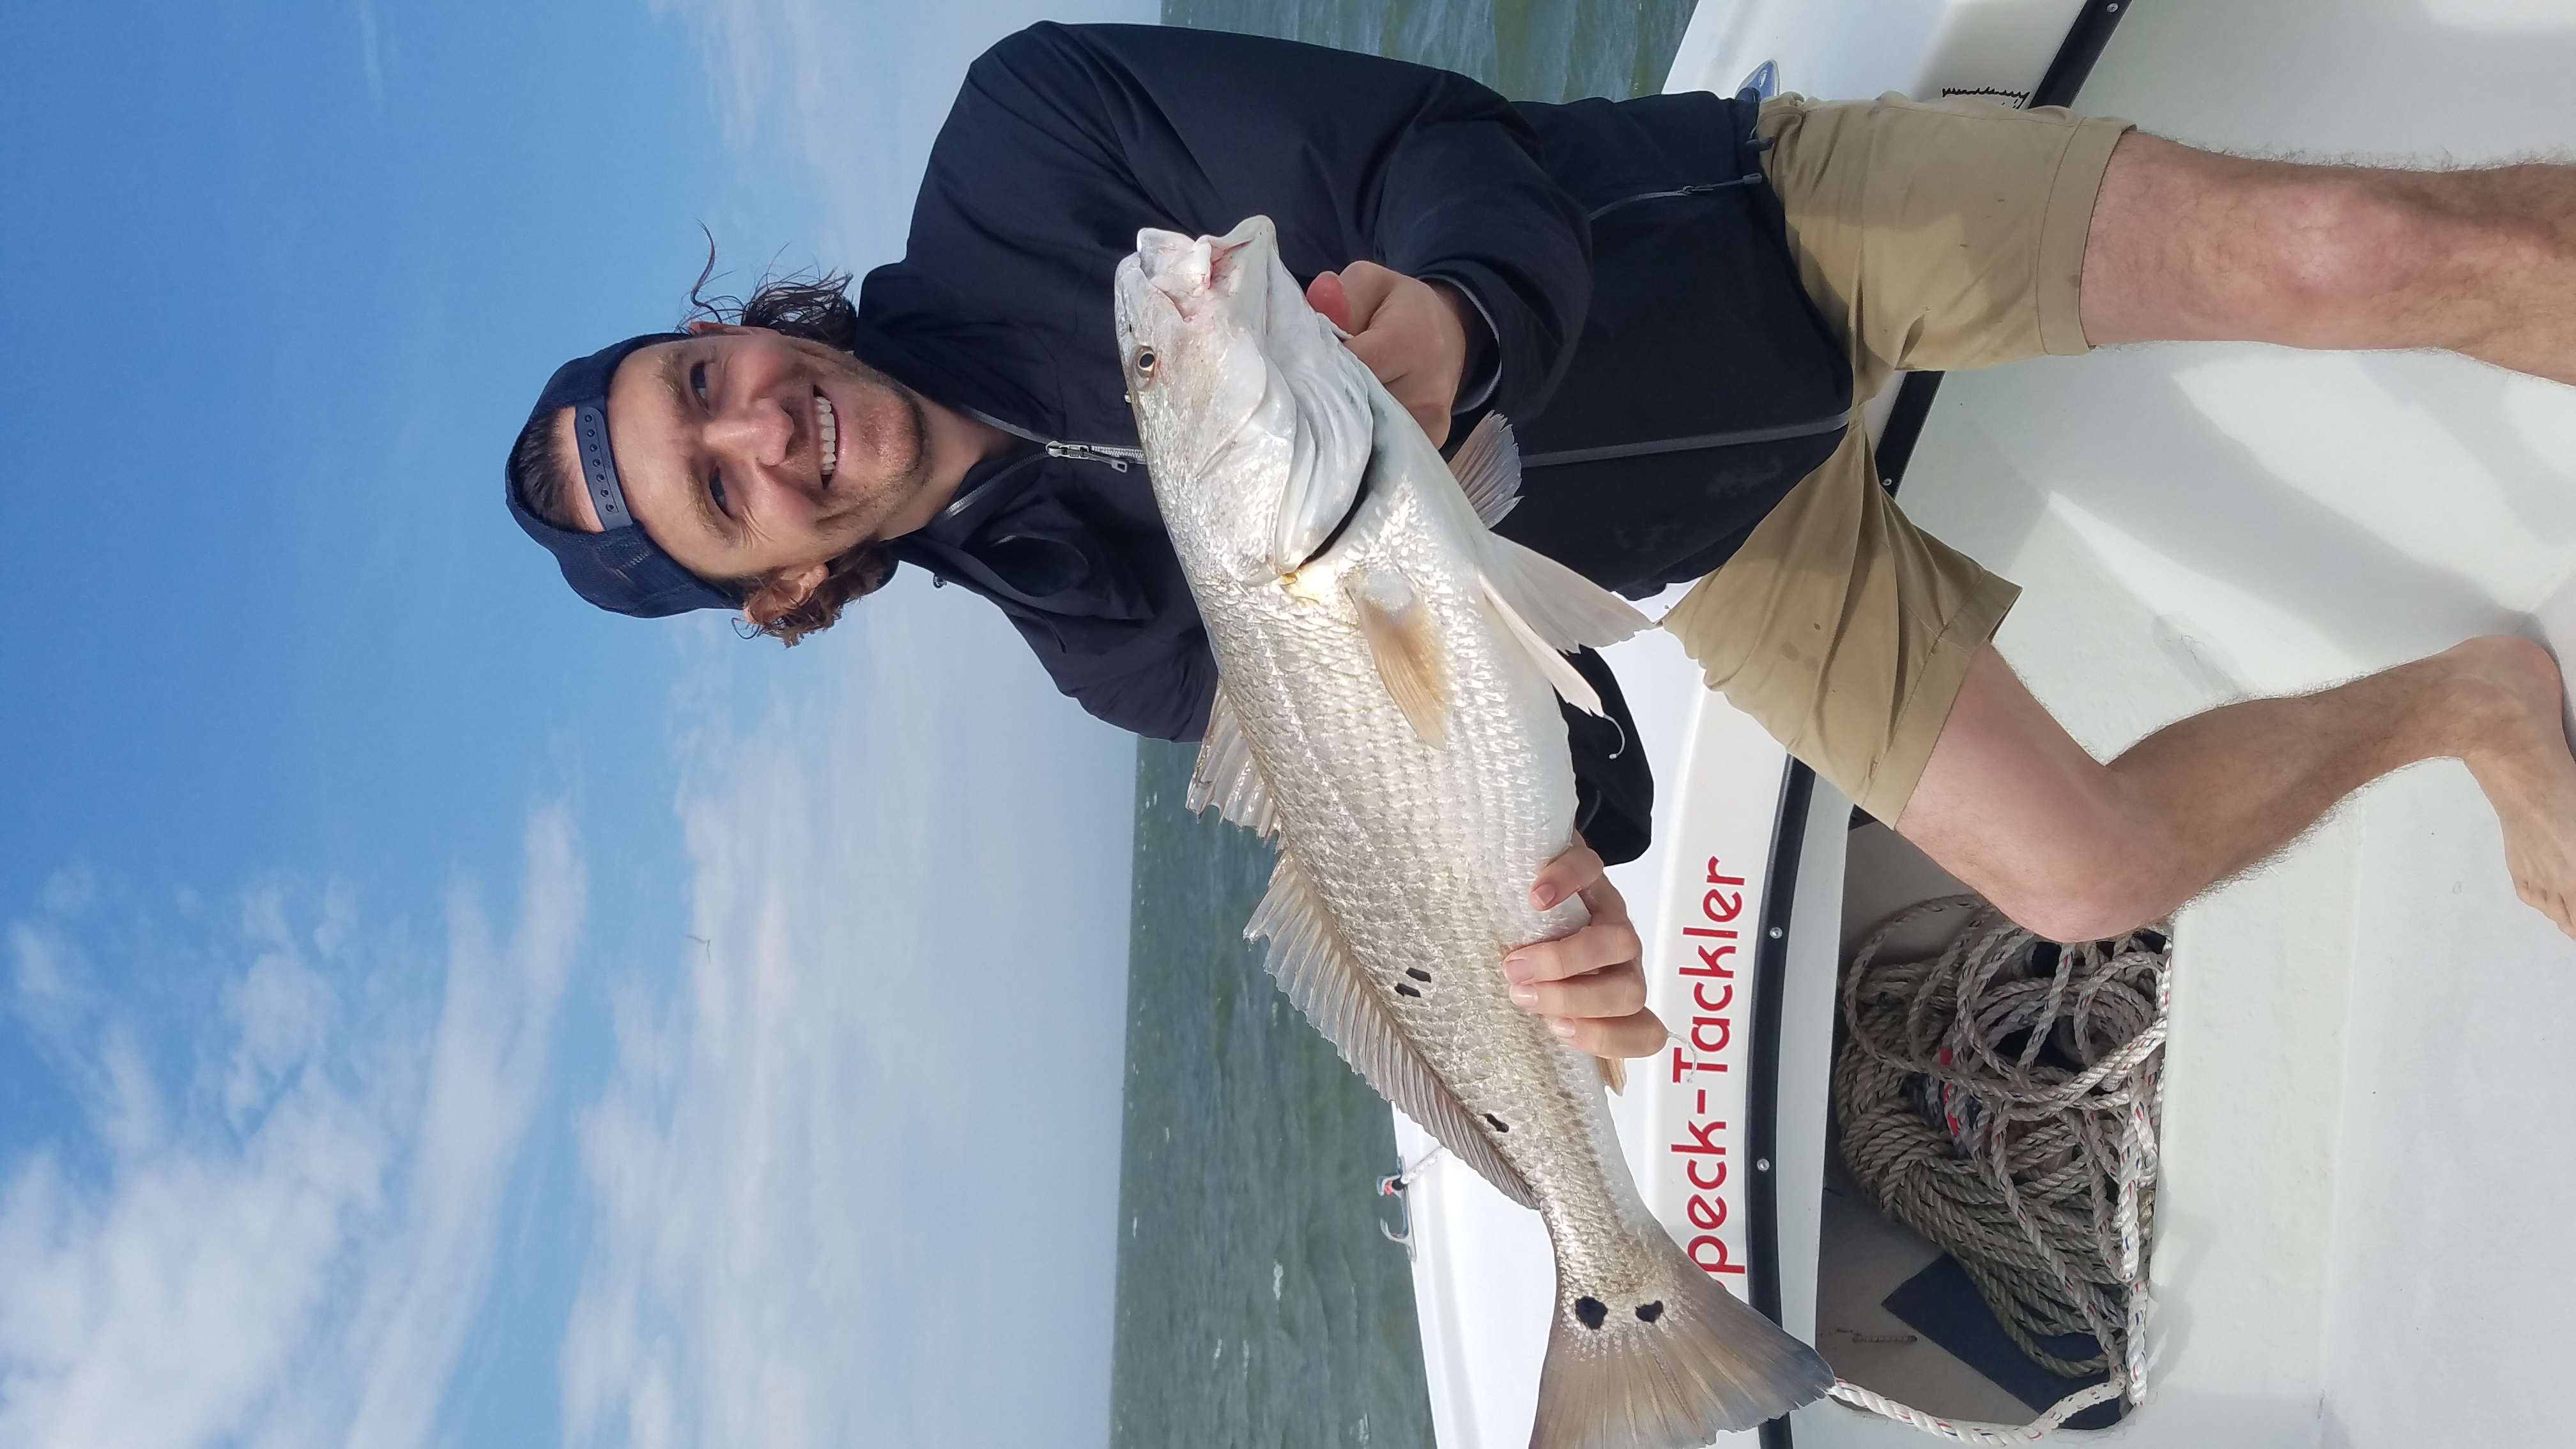 Puppy Drum, Speck-Tackler Inshore Fishing Charters